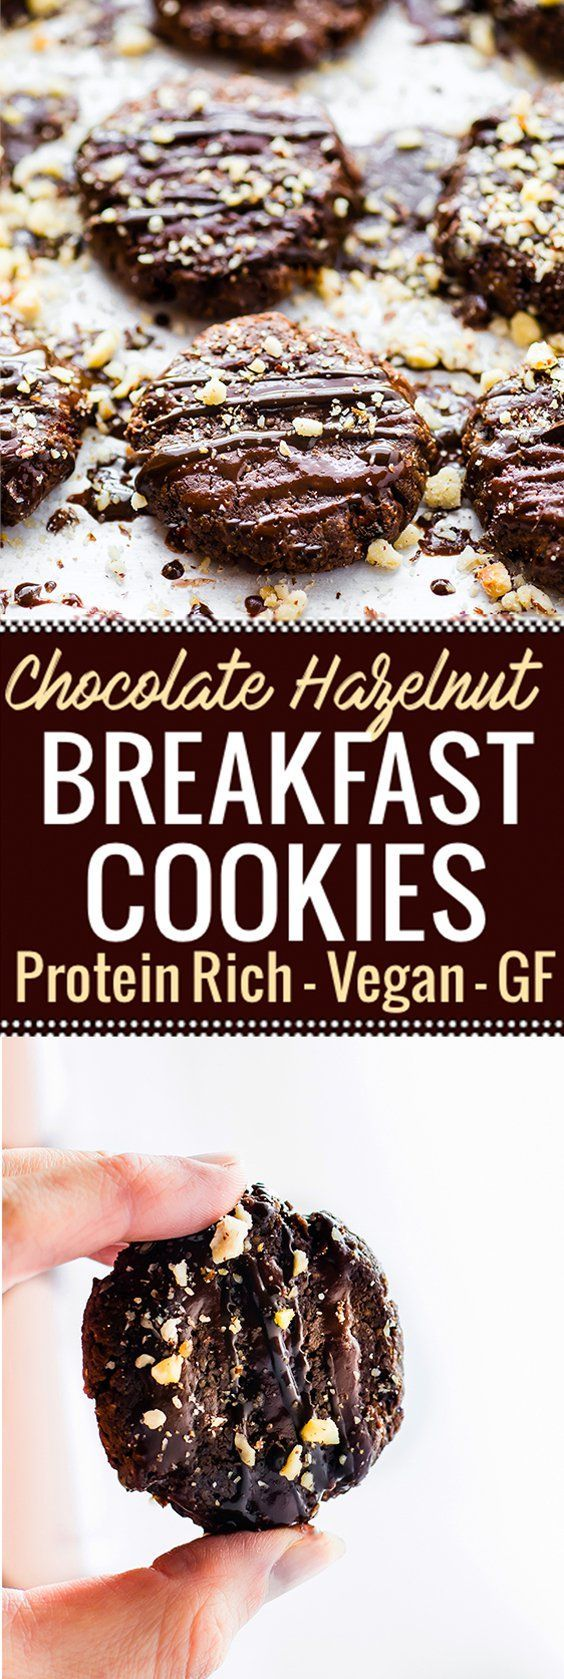 Vegan Chocolate Hazelnut Breakfast Protein Cookies made with just a few simple Ingredients! These protein cookies are packed with real food and plant based protein! Hazelnuts, banana, plant protein, and dark chocolate. Vegan, flourless, and tastes like dessert. A chocolate protein cookie you're totally allowed to eat for breakfast. http://www.cottercrunch.com #onenewGNC